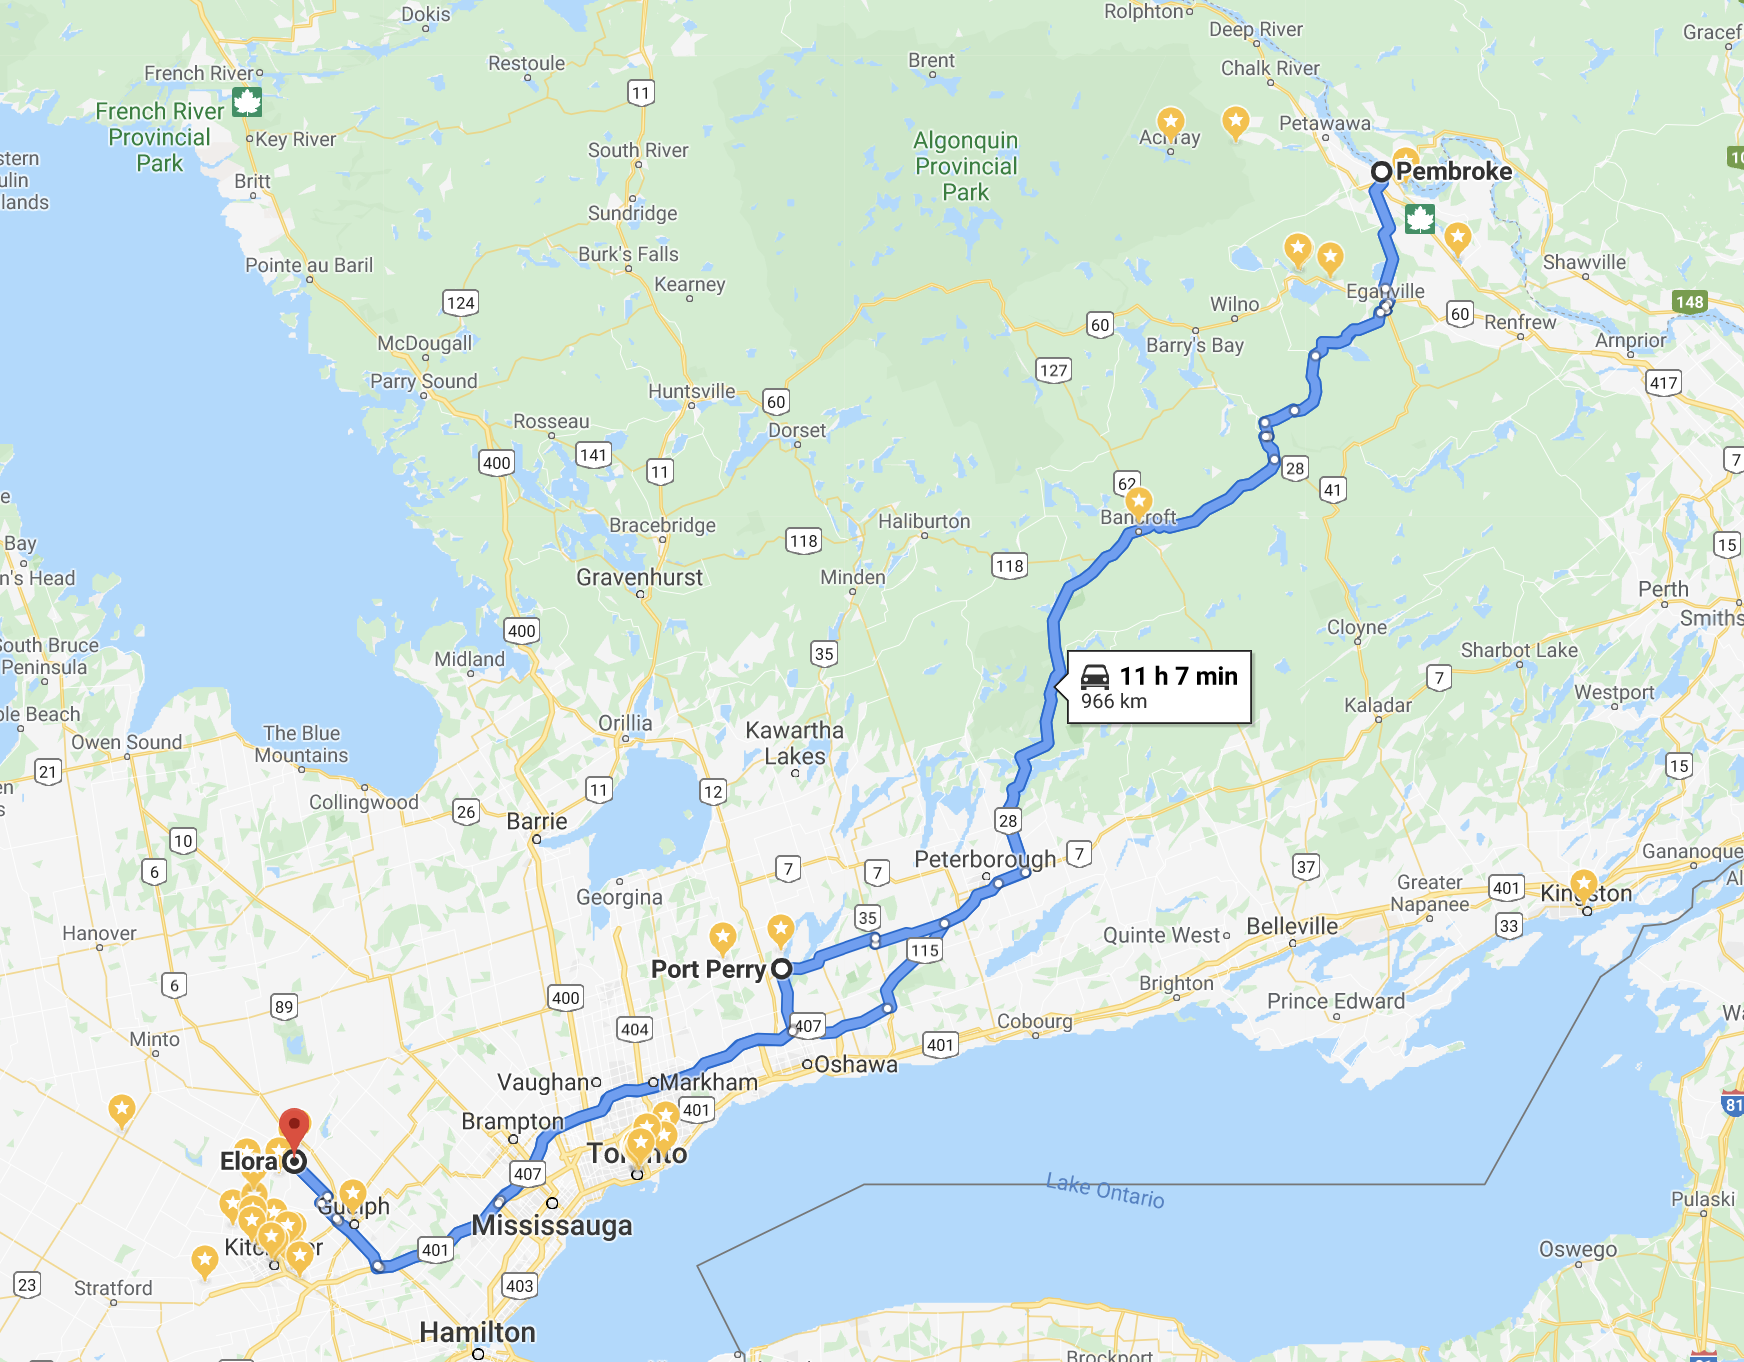 View of my route from Elora to Pembroke and back on Google Maps